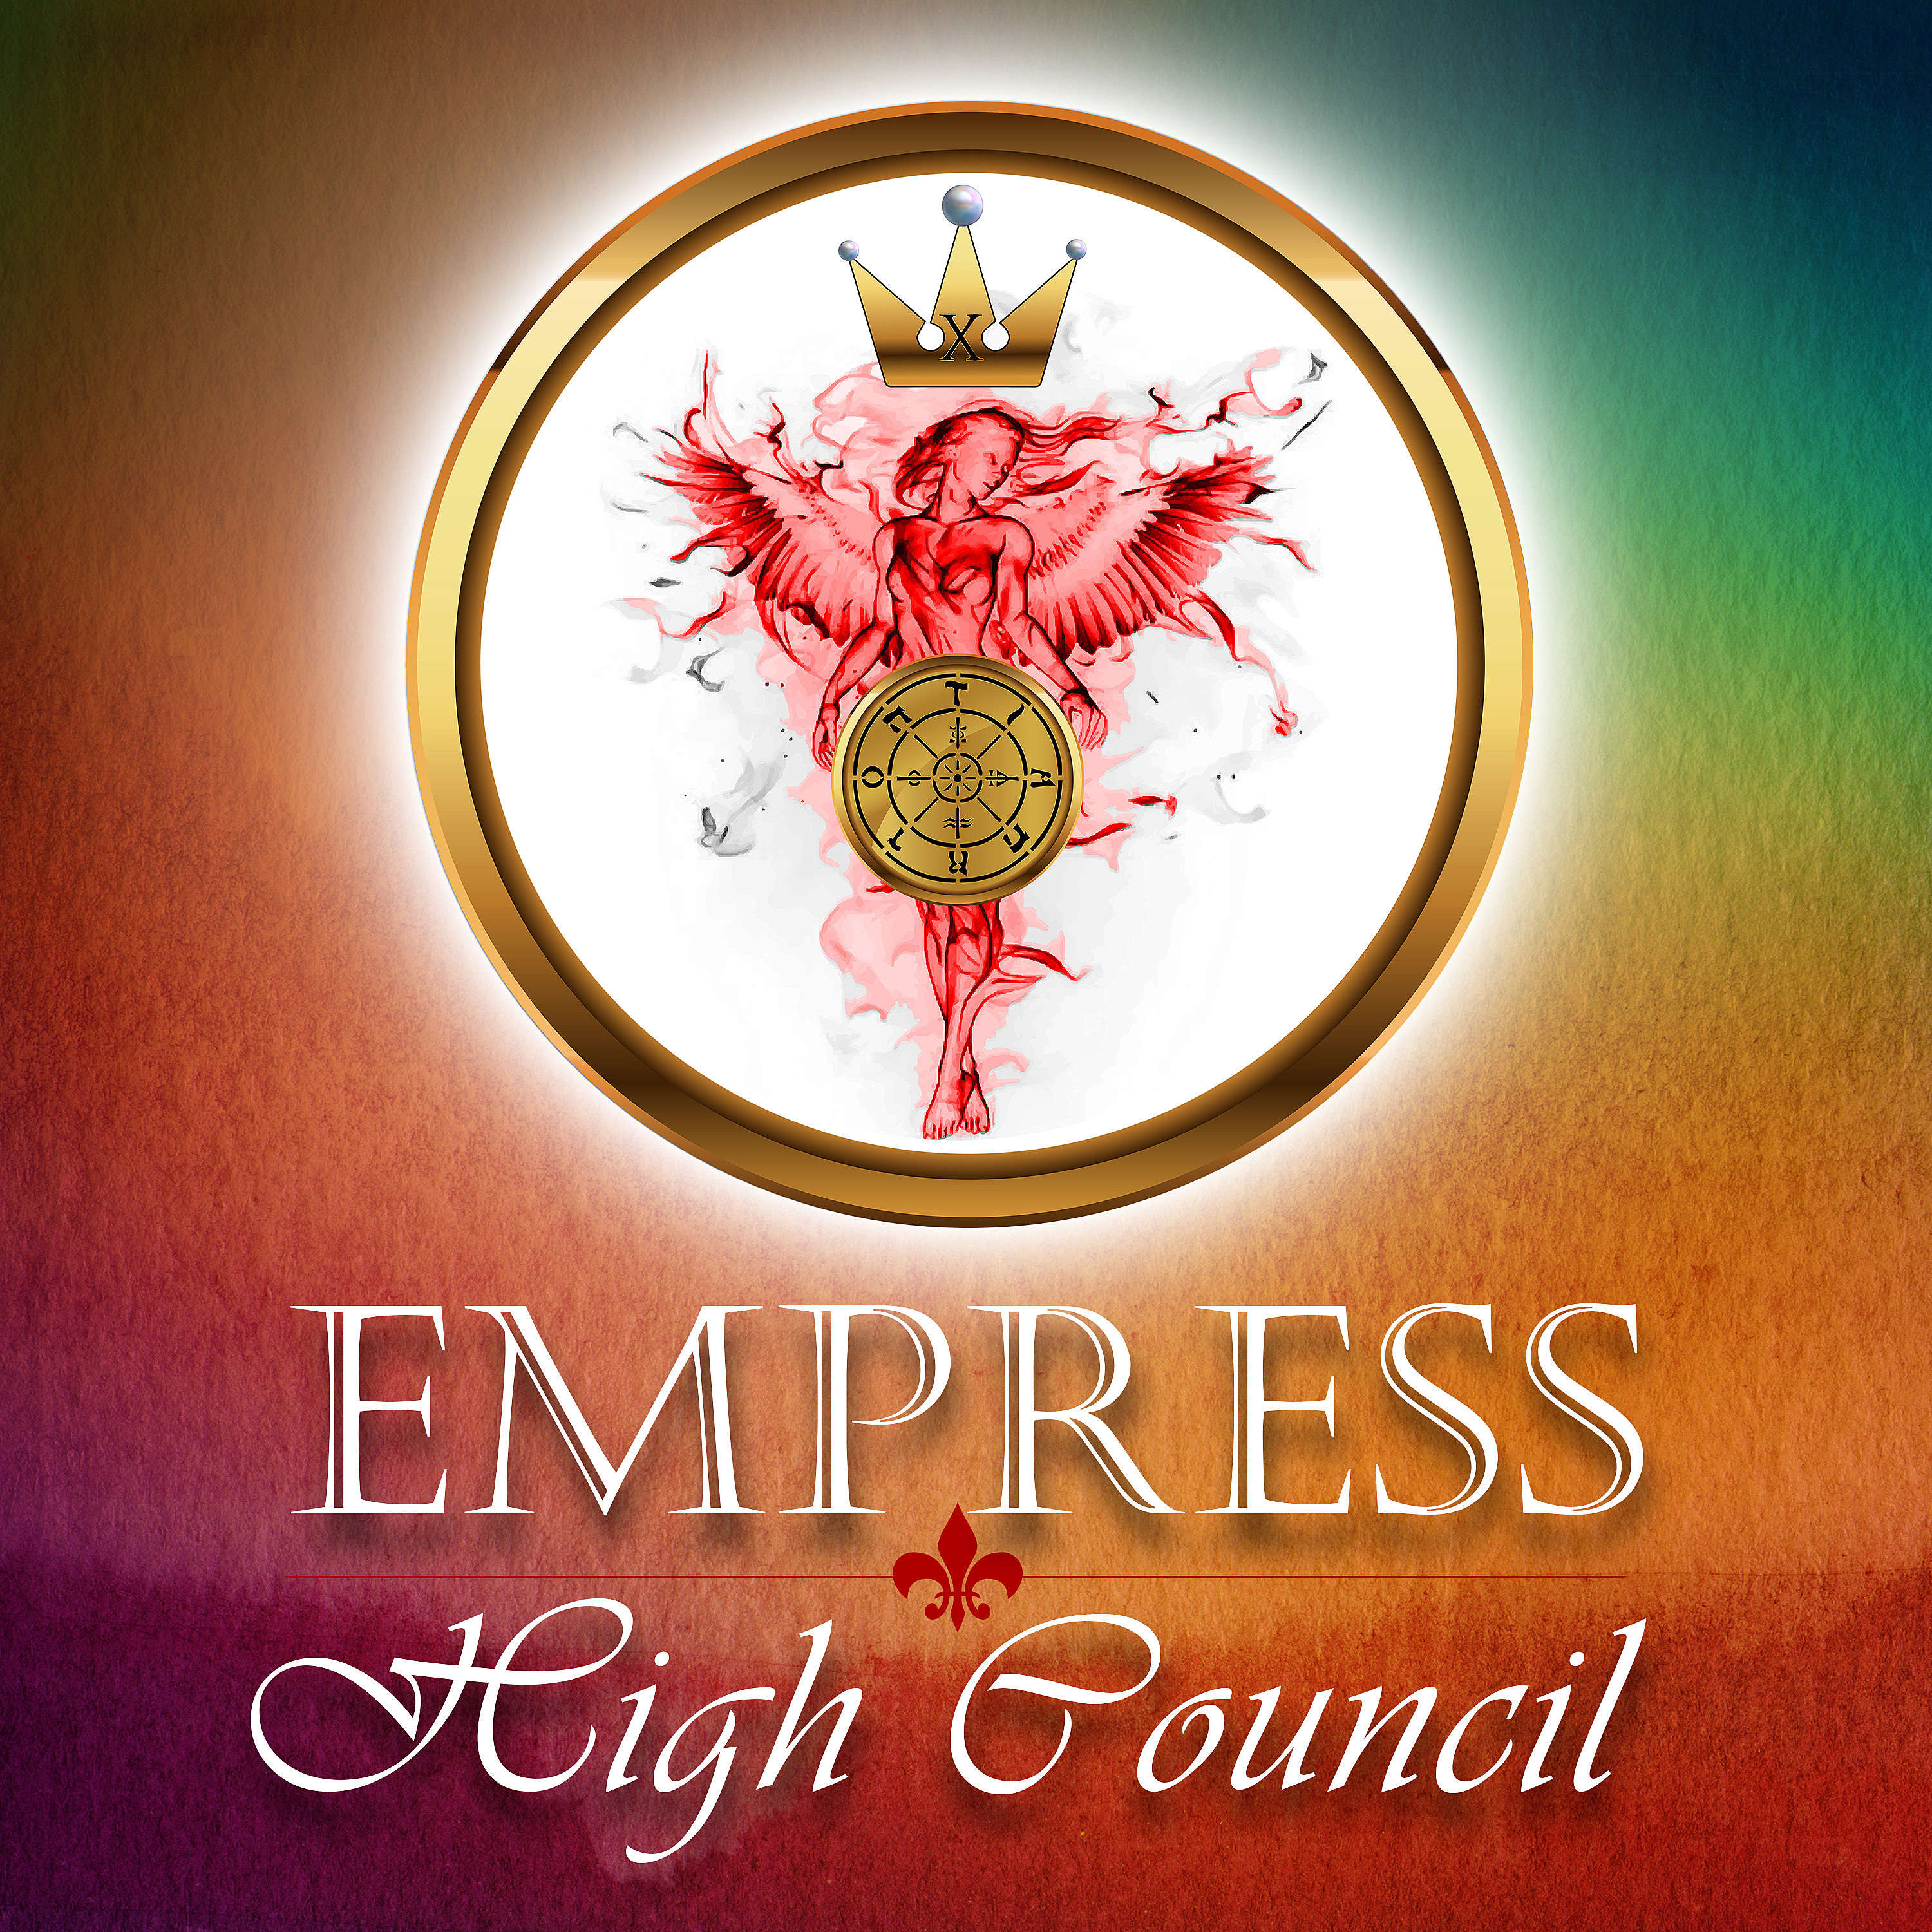 Empress High Council